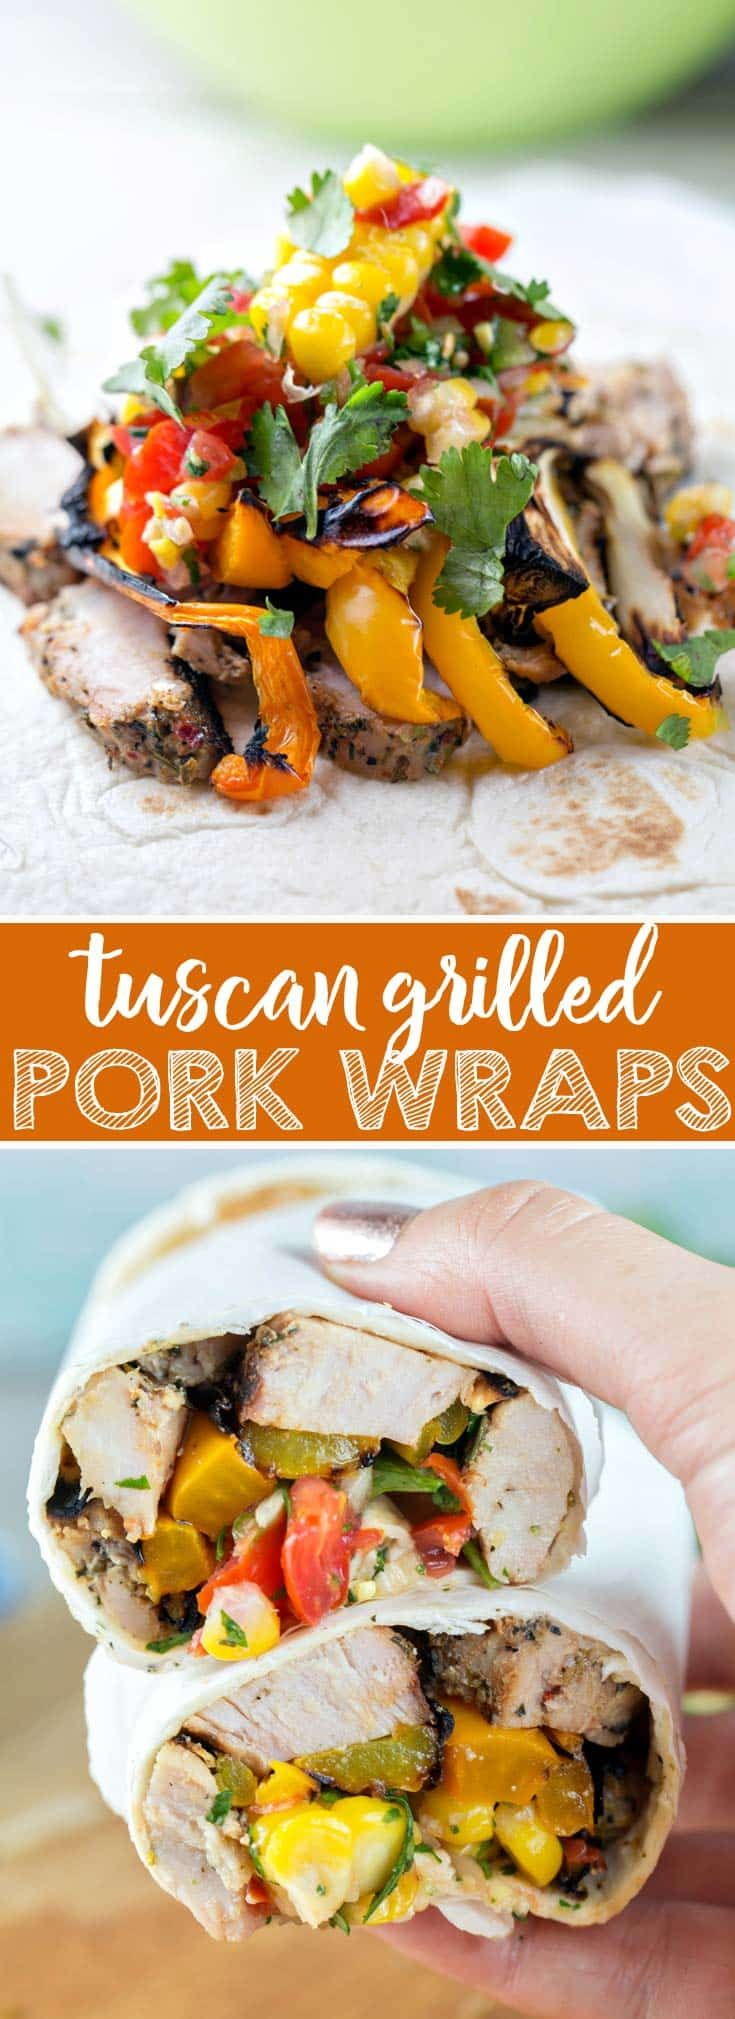 Grilled Pork Tenderloin Wraps: tuscan herb pork tenderloin with grilled peppers and onions and a homemade corn salsa wrapped in a corn tortilla. Perfect for dining on the go - great for picnics and packed lunches! {Bunsen Burner Bakery} via @bnsnbrnrbakery [ad]  #SimplyTastyPork #ResetTheTable @hatfieldmeats